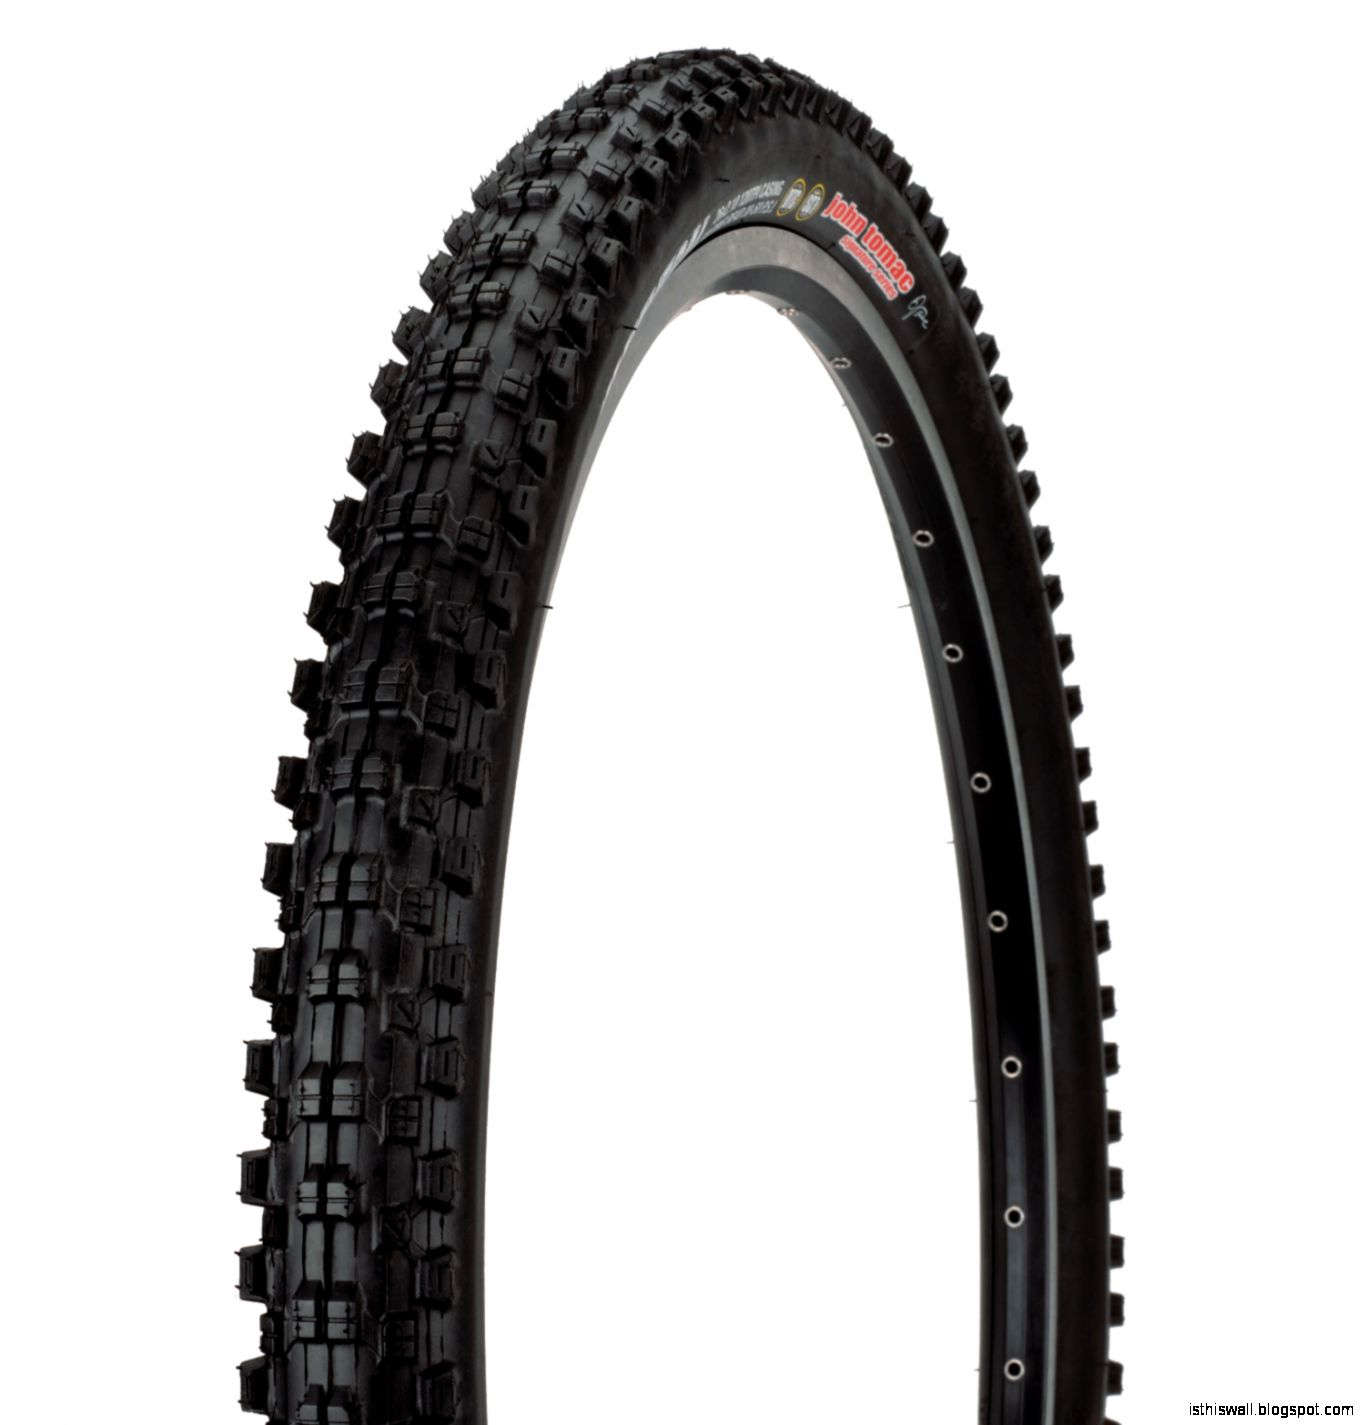 Kenda Mountain Bike Tires